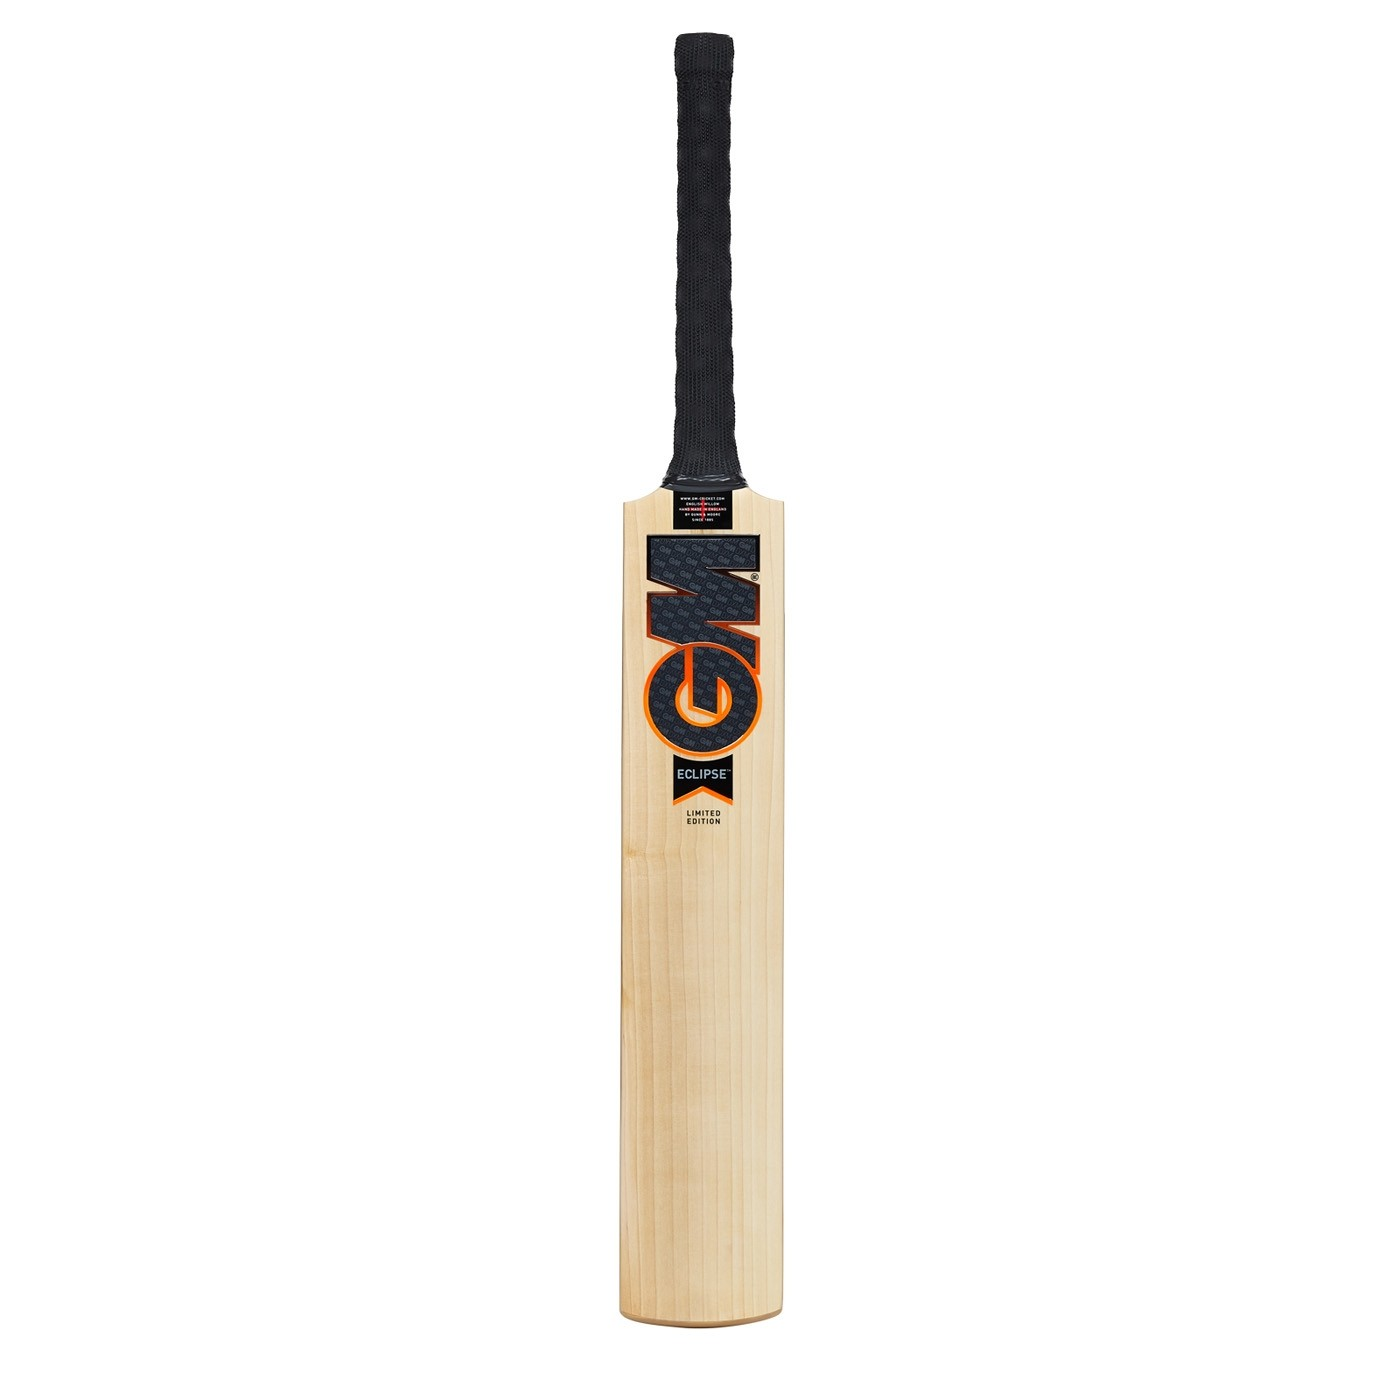 2020 Gunn and Moore Eclipse DXM Original Cricket Bat